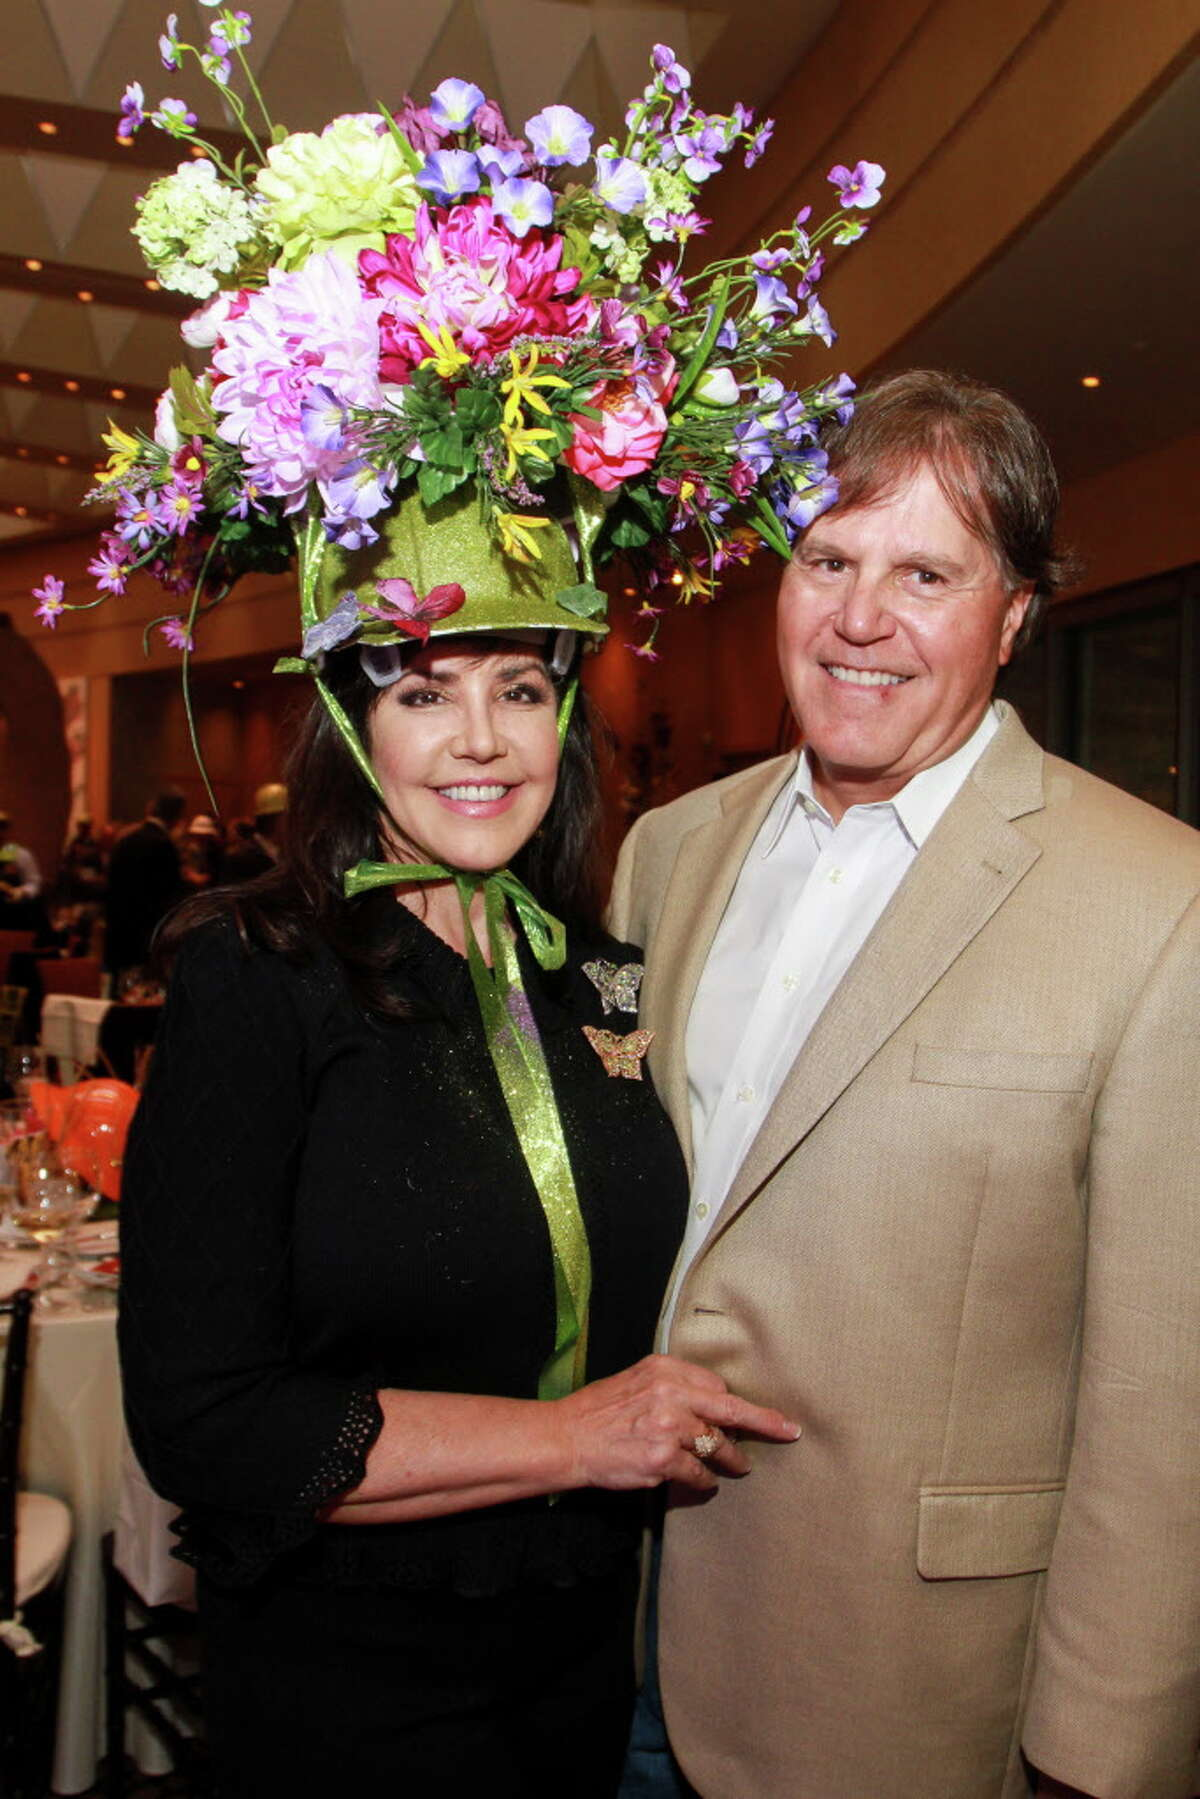 Robin Young-Ellis and Commissioner Joe Ellis at the celebrity servers event. (For the Chronicle/Gary Fountain, April 10, 2016)